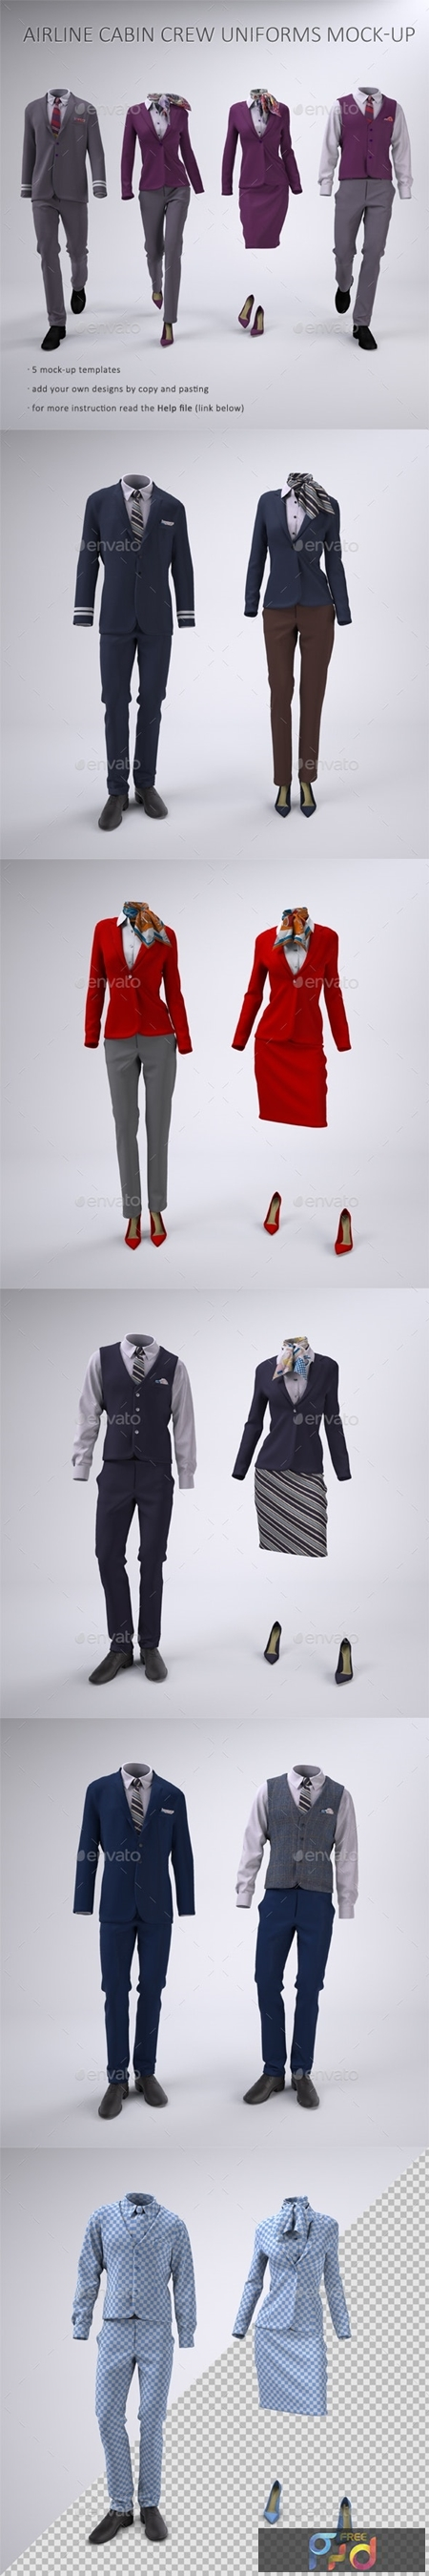 Airline Cabin Crew or Hotel Uniforms Mock-Up 23268316 1